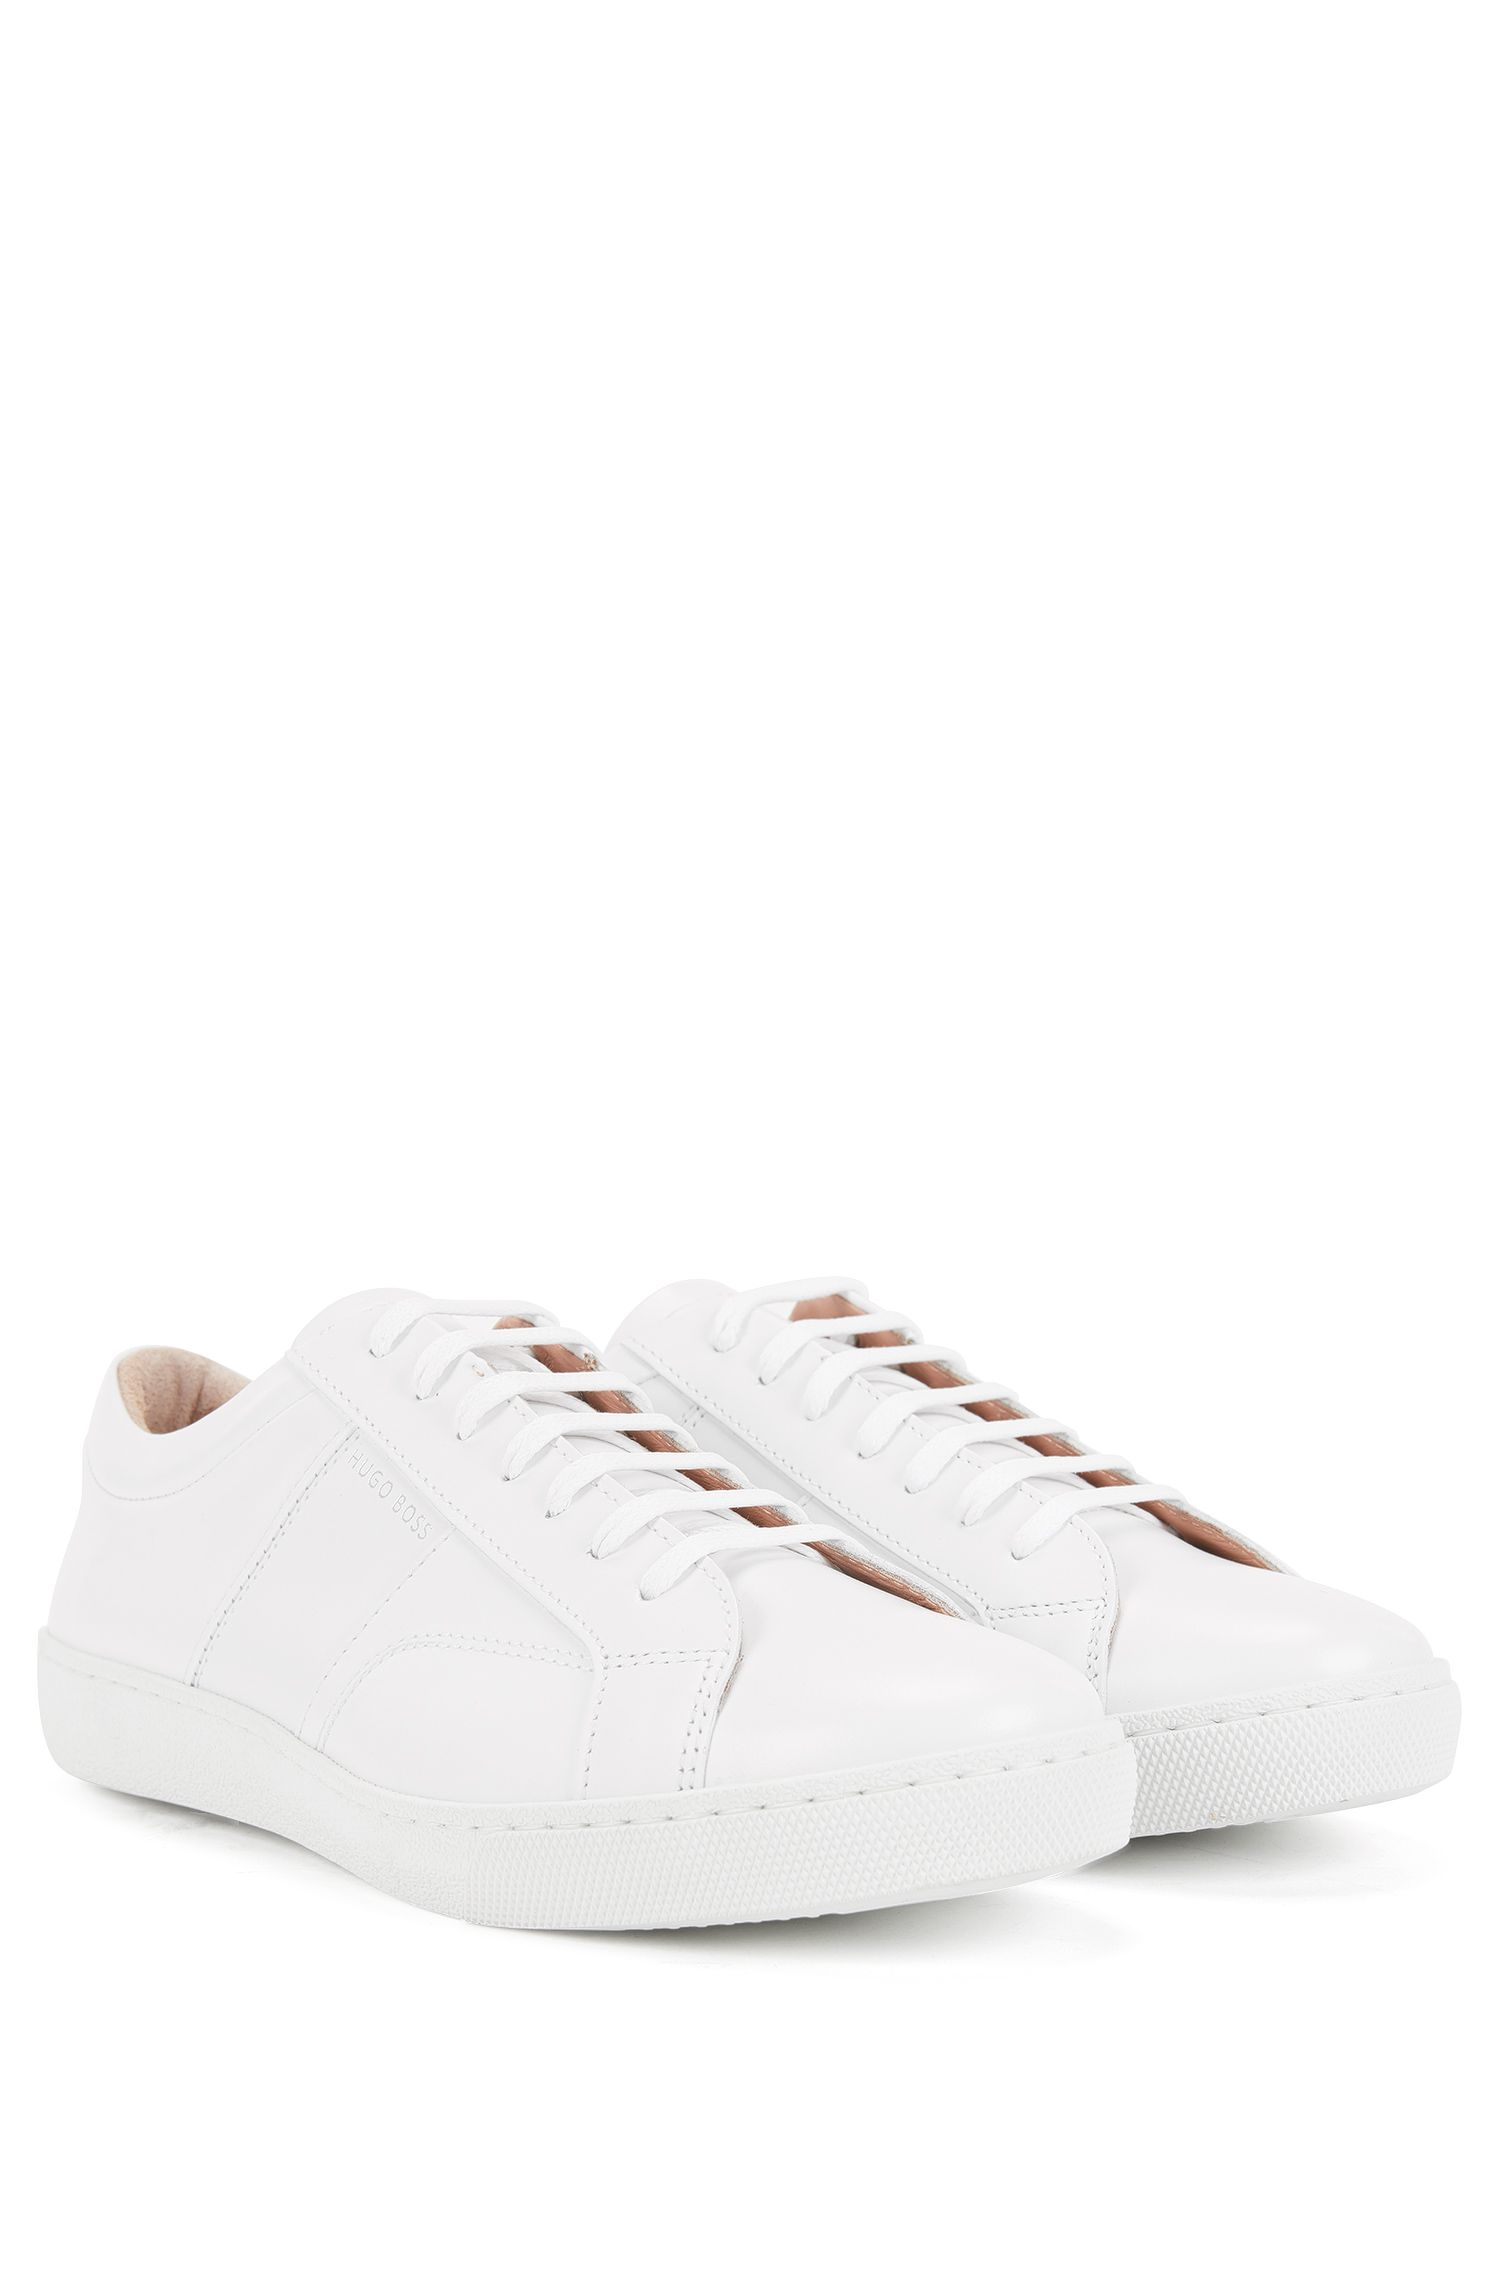 Low-top trainers in Italian leather